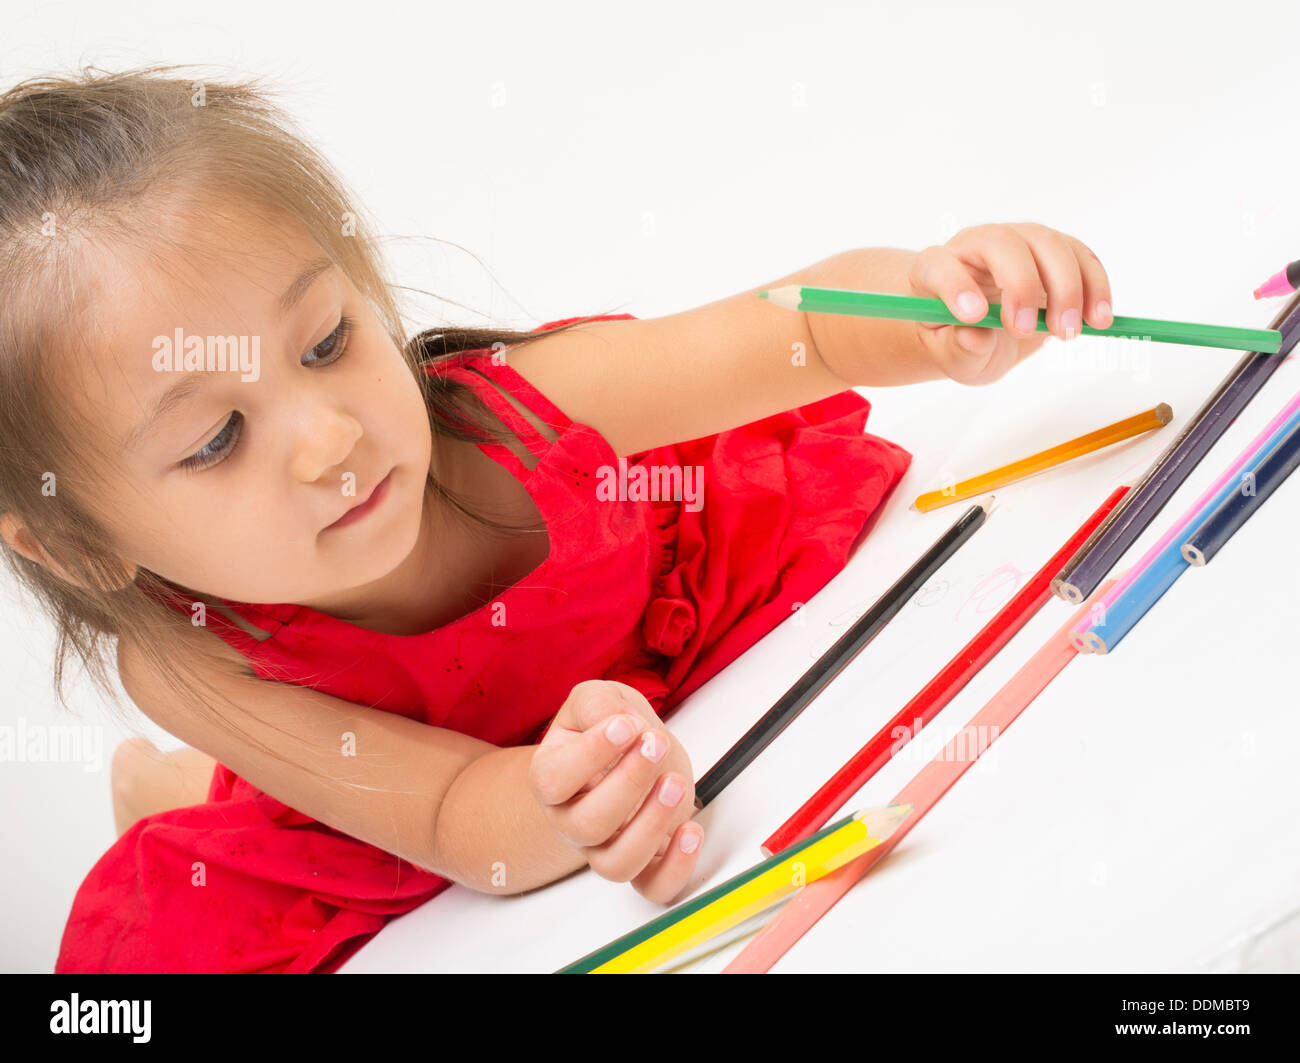 Young girl coloring with colored pencils Stock Photo: 60069977 - Alamy